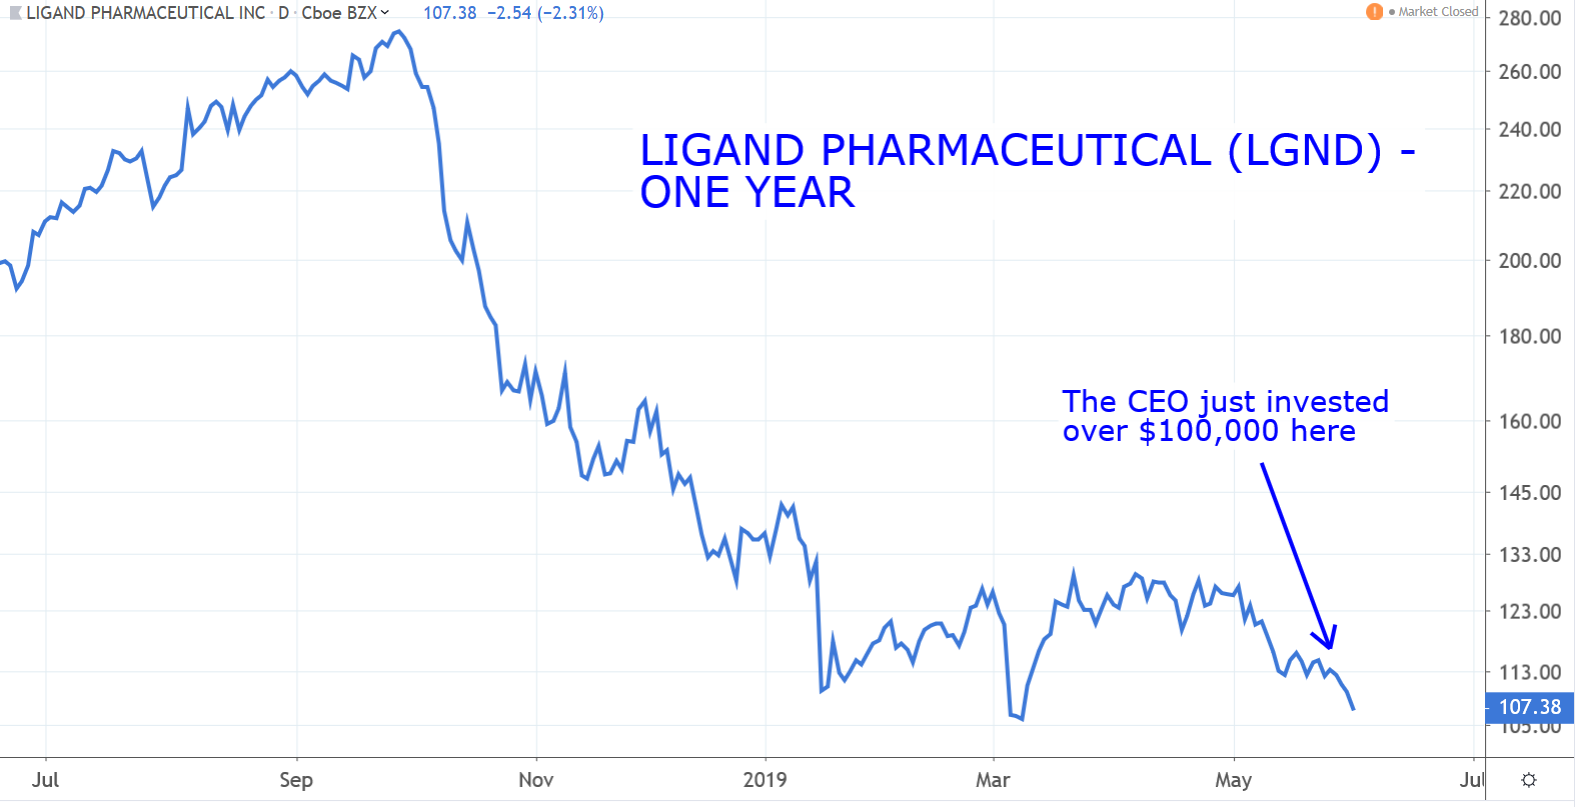 Stocks to Buy: Ligand Pharmaceuticals (LGND)